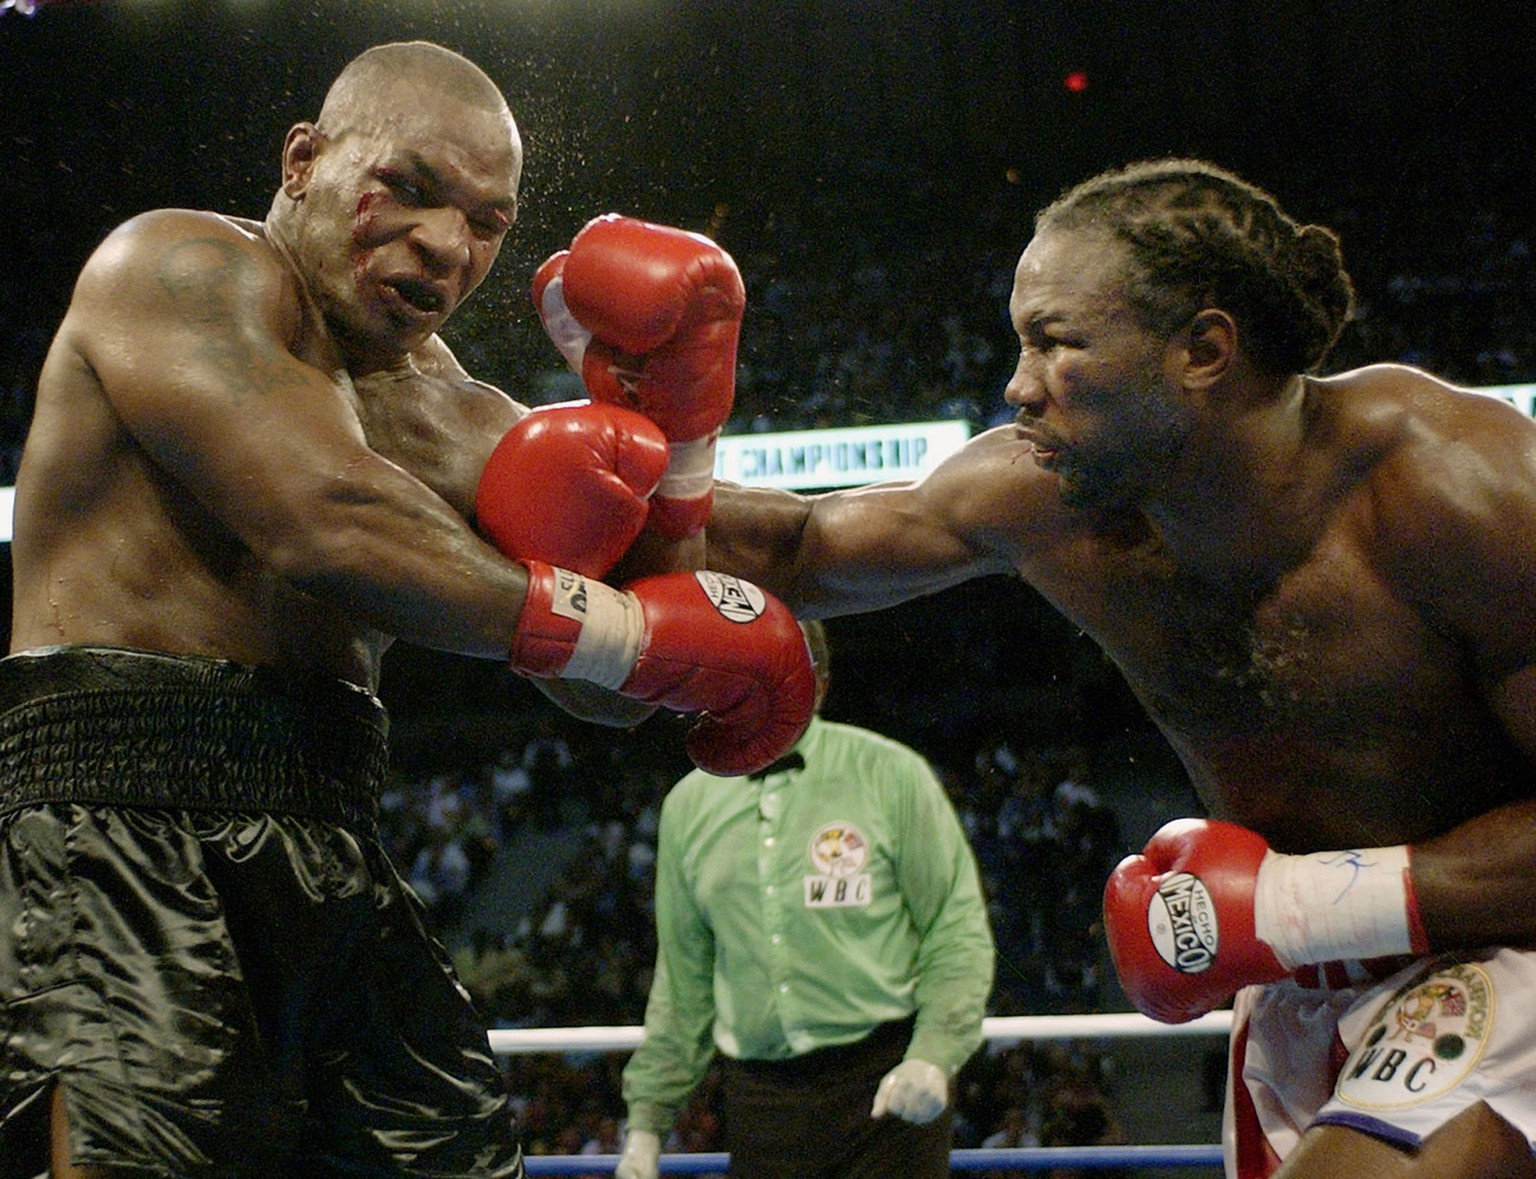 Mike Tyson, left, reels back after a right from Lennox Lewis during the seventh round of their WBC/IBF heavyweight championship bout at The Pyramid in Memphis, Tenn., Saturday, June 8, 2002. Lewis knocked down Tyson in the eighth round. (AP Photo/Laura Rauch)